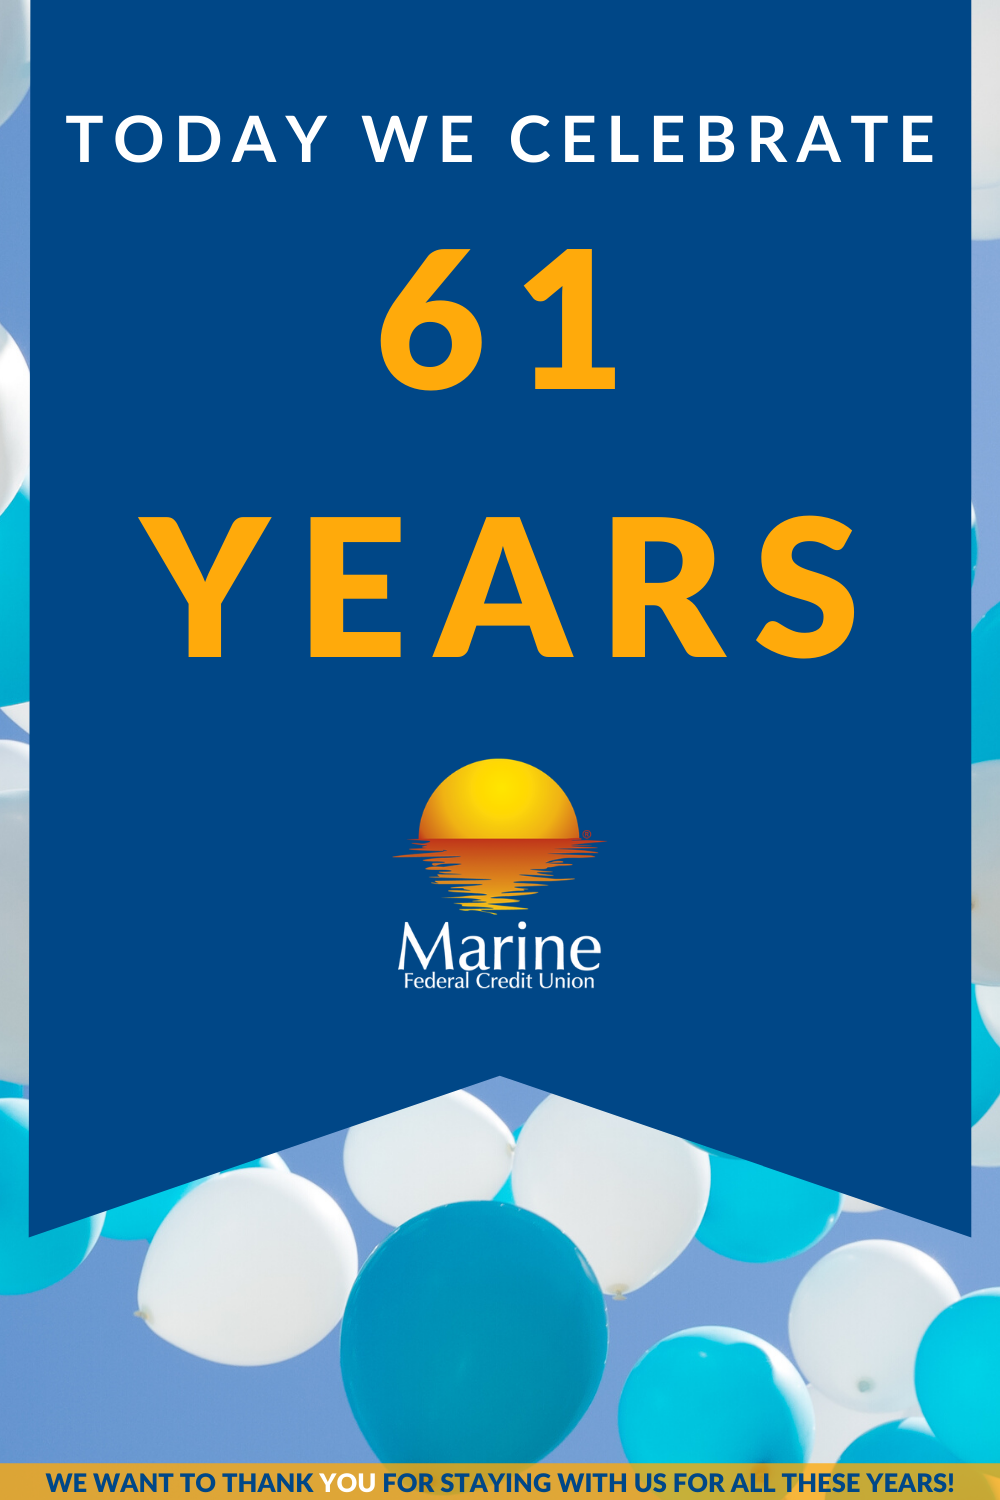 Today, April 24, 2020 is Marine Federal Credit Union's